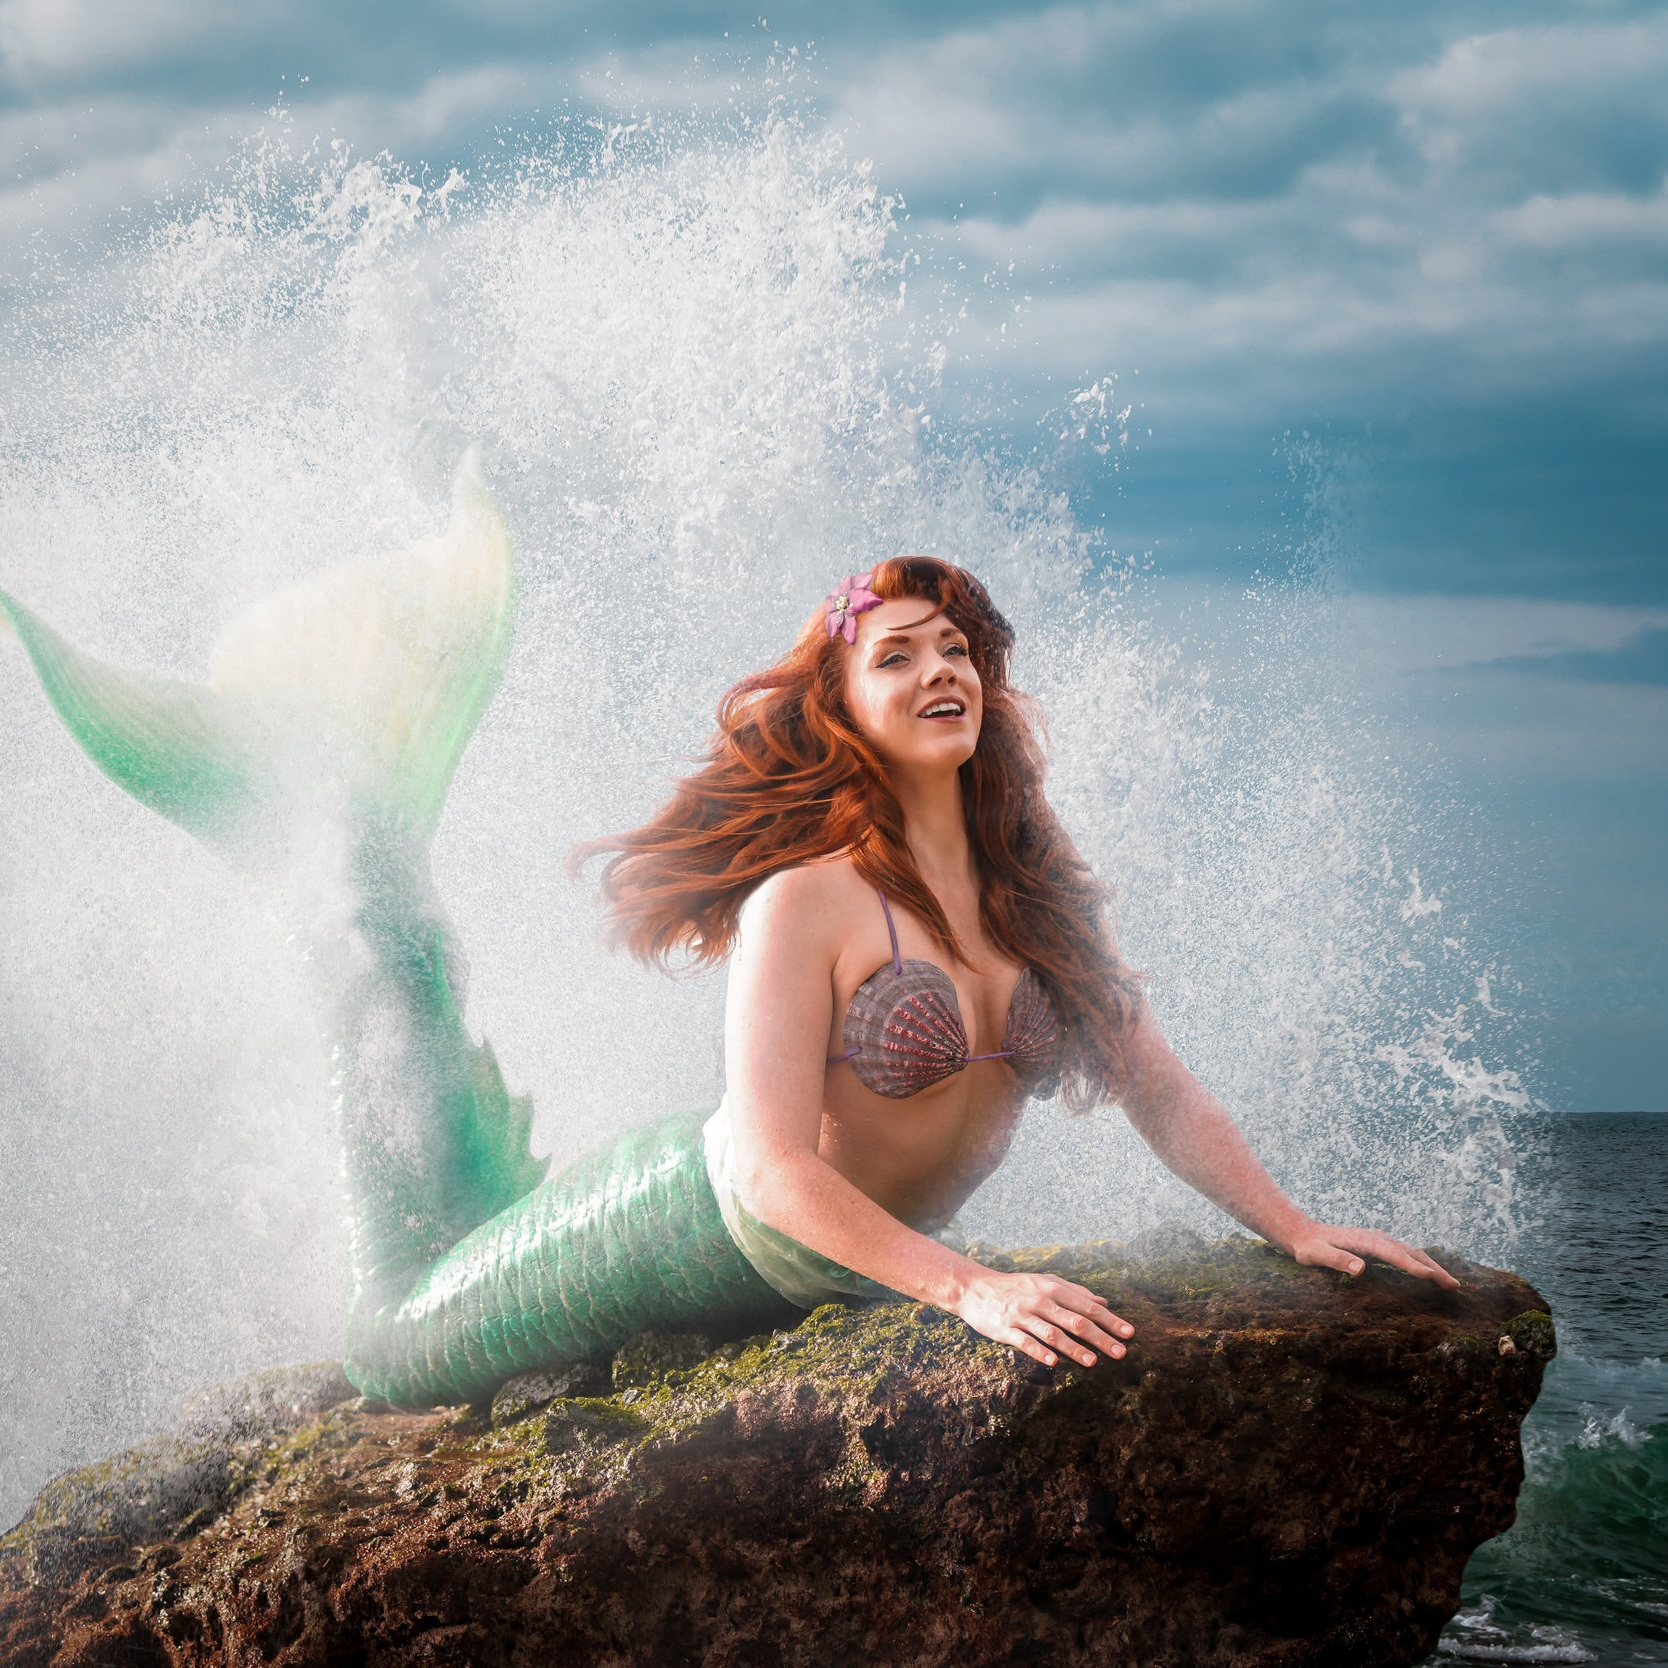 The Little Mermaid Or Original Character Princess Leira